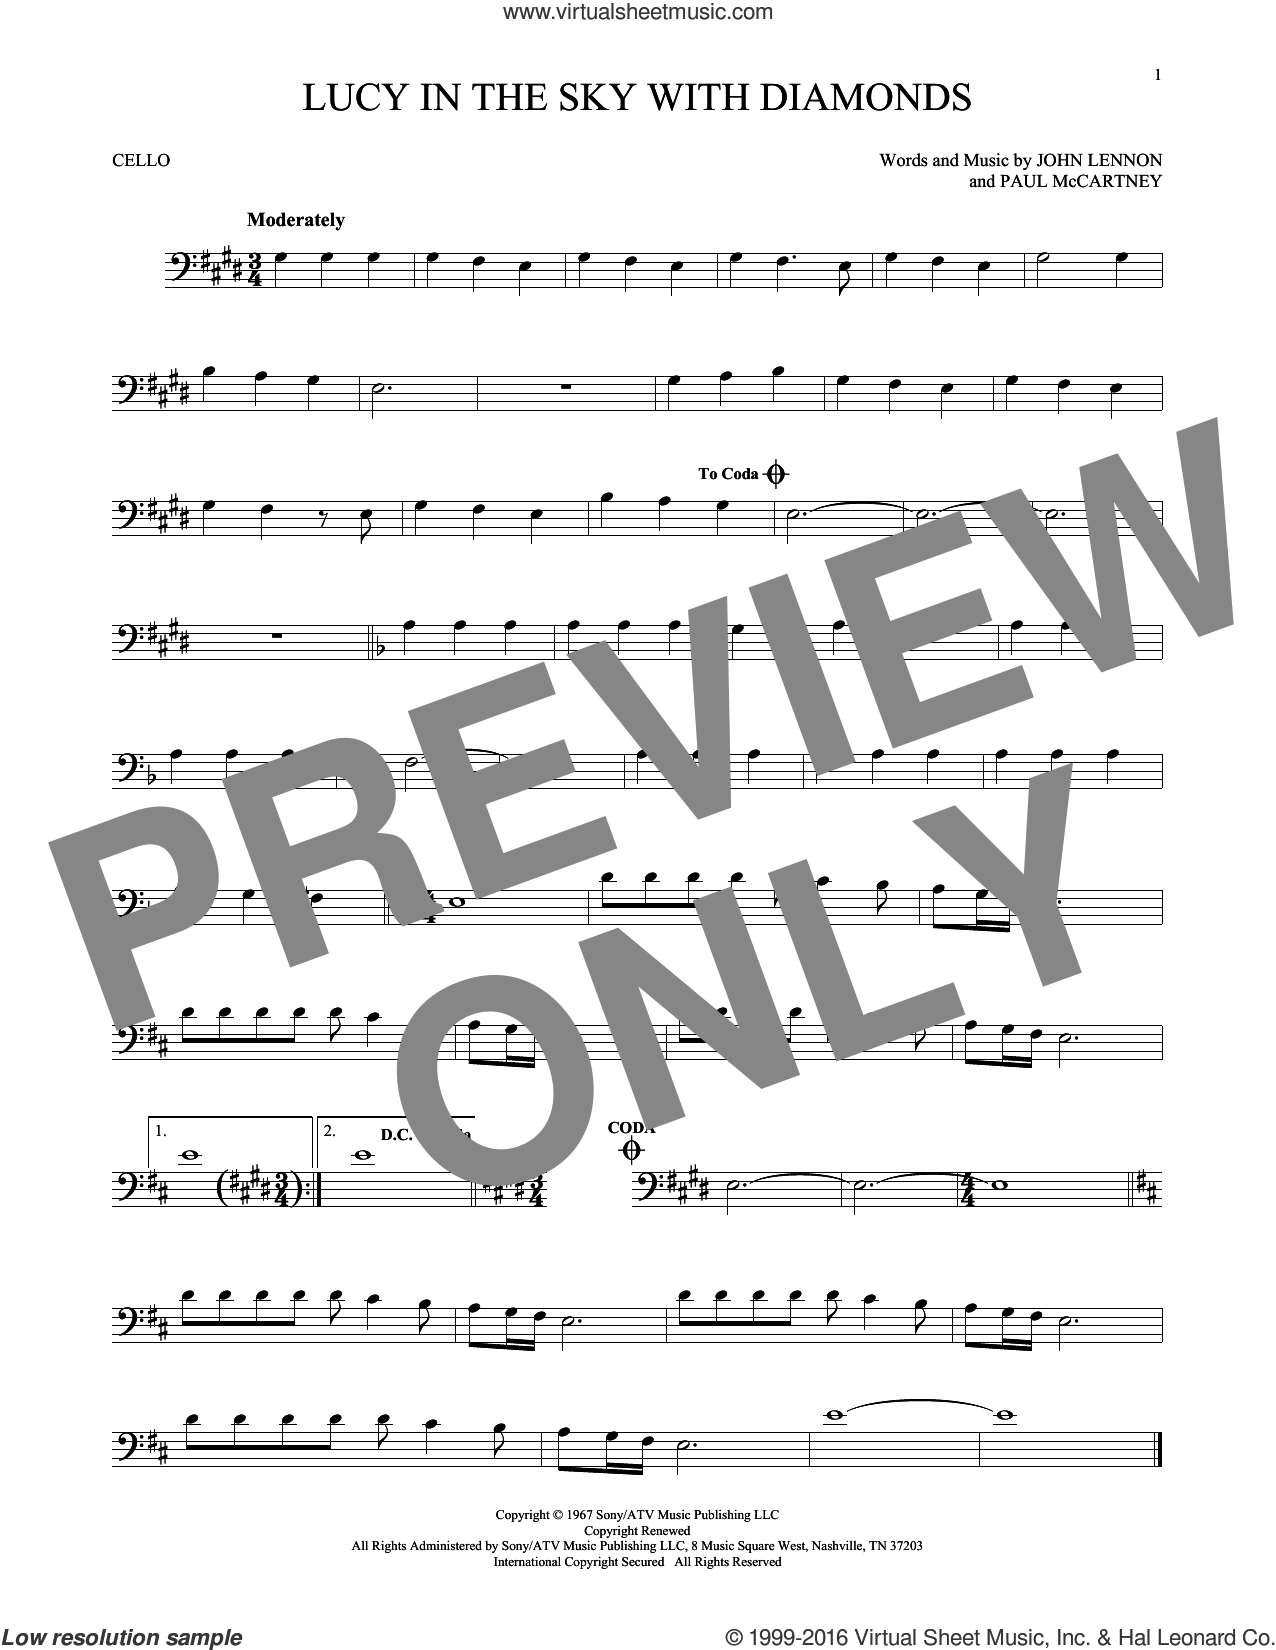 Lucy In The Sky With Diamonds sheet music for cello solo by The Beatles, Elton John, John Lennon and Paul McCartney, intermediate skill level